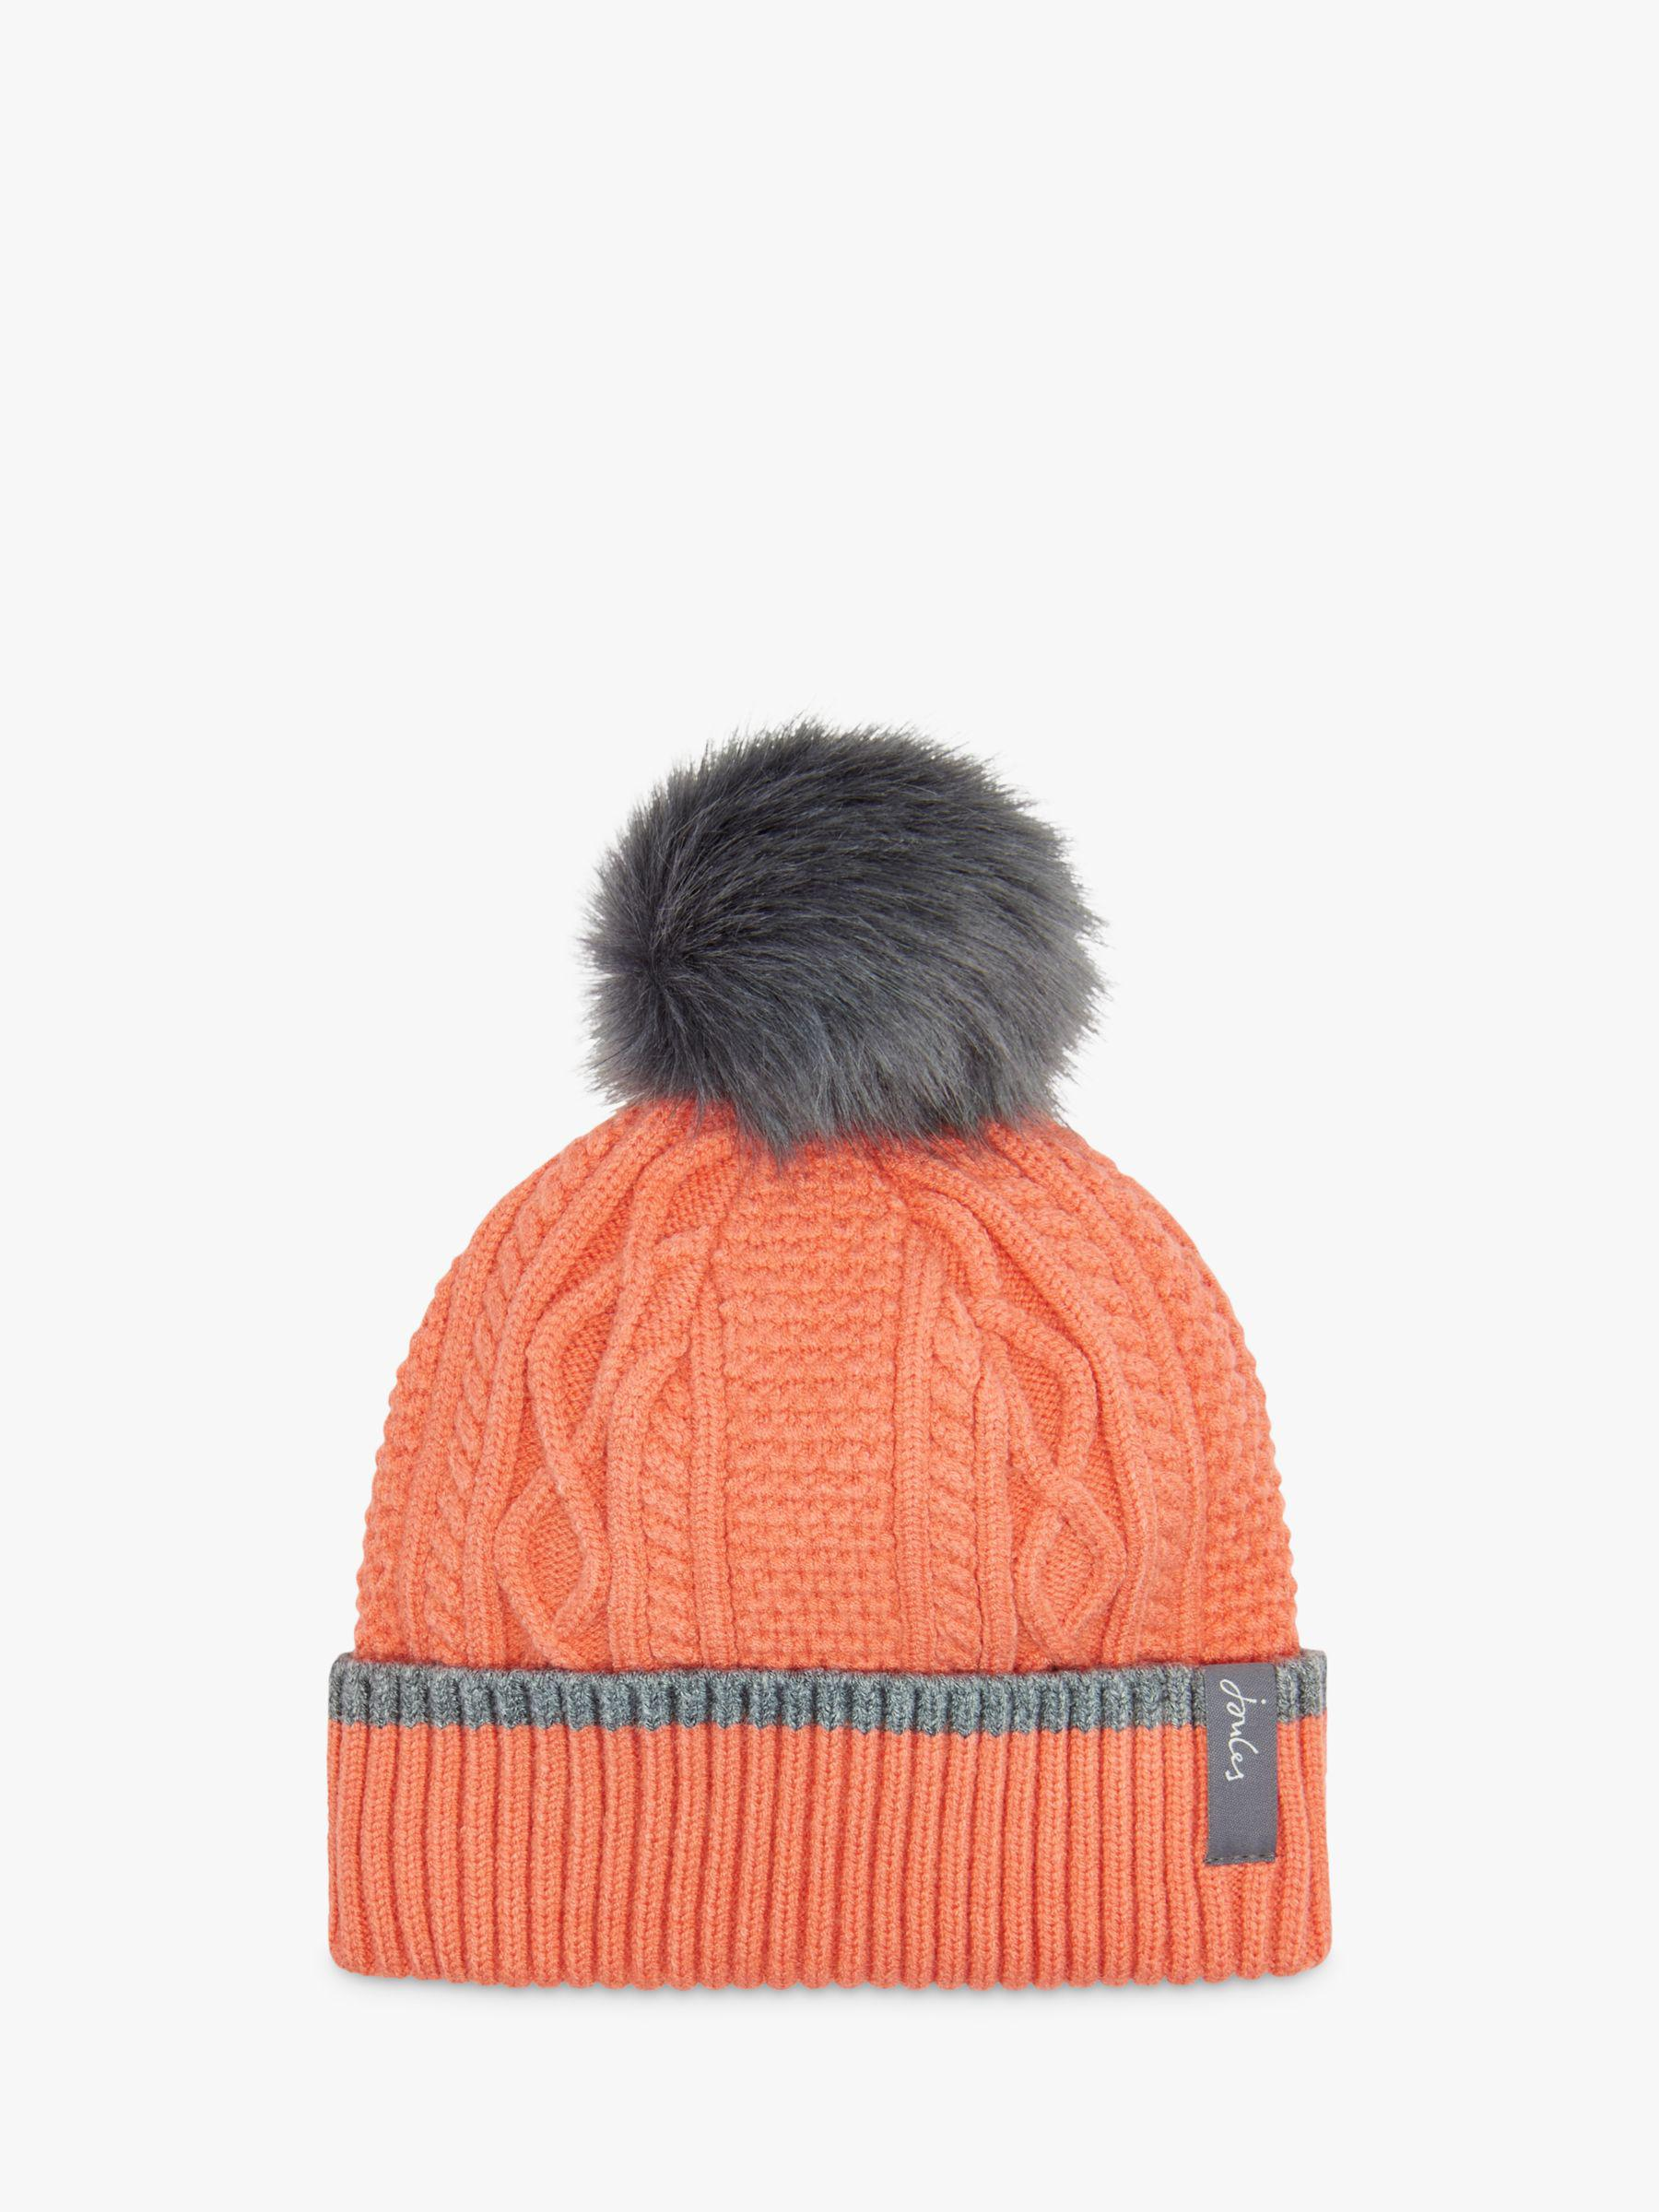 0043041564e70 Joules Anya Bobble Cable Knit Hat in Orange - Lyst